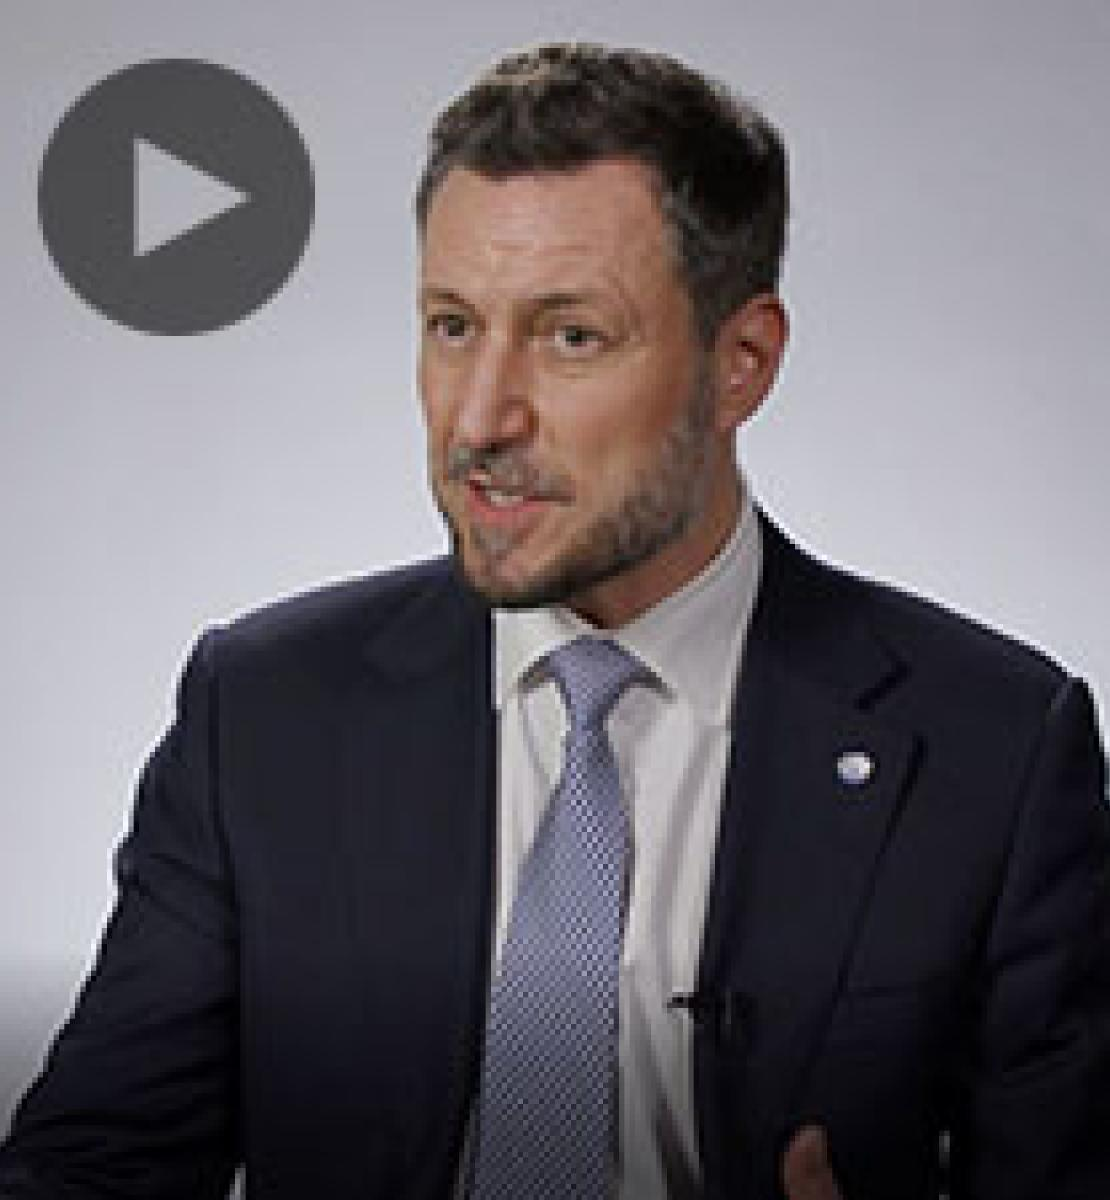 Screenshot from video message shows Resident Coordinator, Arnaud Peral